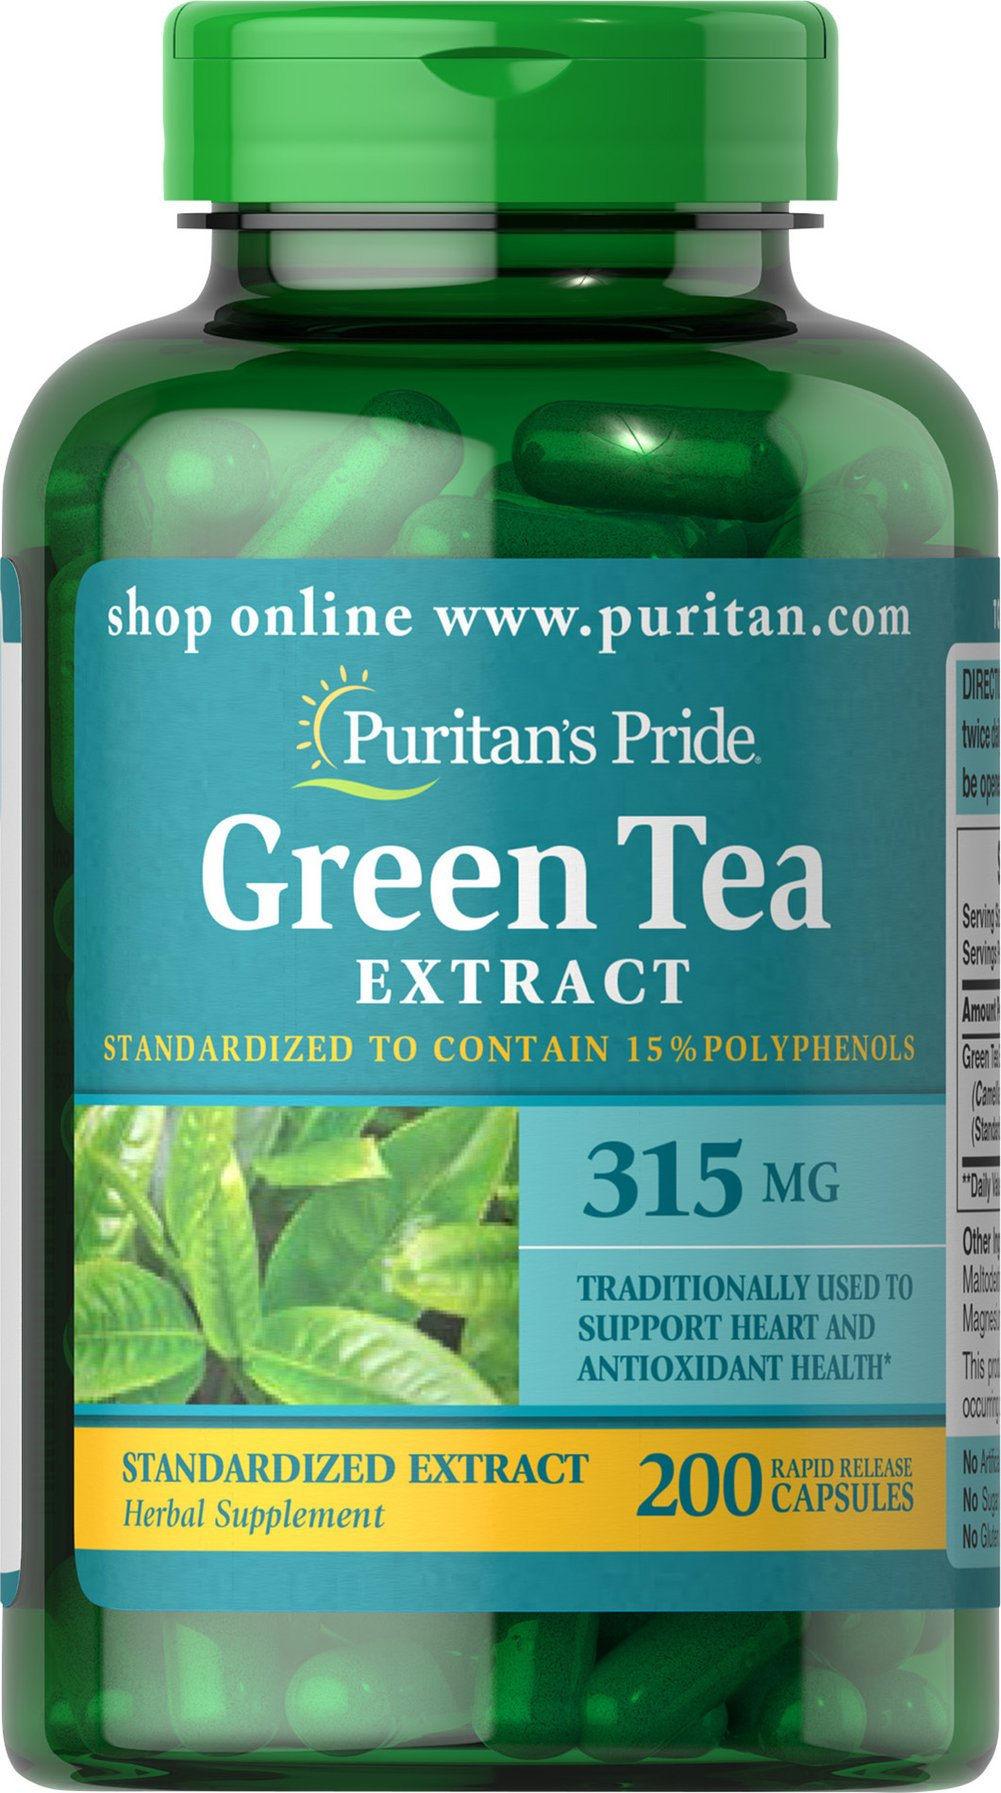 "Green Tea Standardized Extract 315 mg <p>Green Tea is a nutritional staple in Japan where it has been used for centuries. Green Tea contains beneficial flavonoids, which are natural phytochemicals that provide antioxidant support and health-enhancing properties.** Our ""non-irradiated"" Green Tea Extract contains naturally occurring EGCG.</p><p>Adults can take two capsules twice daily with meals. Capsules may be opened and prepared as a tea.</p> 200 Capsules 315 m"